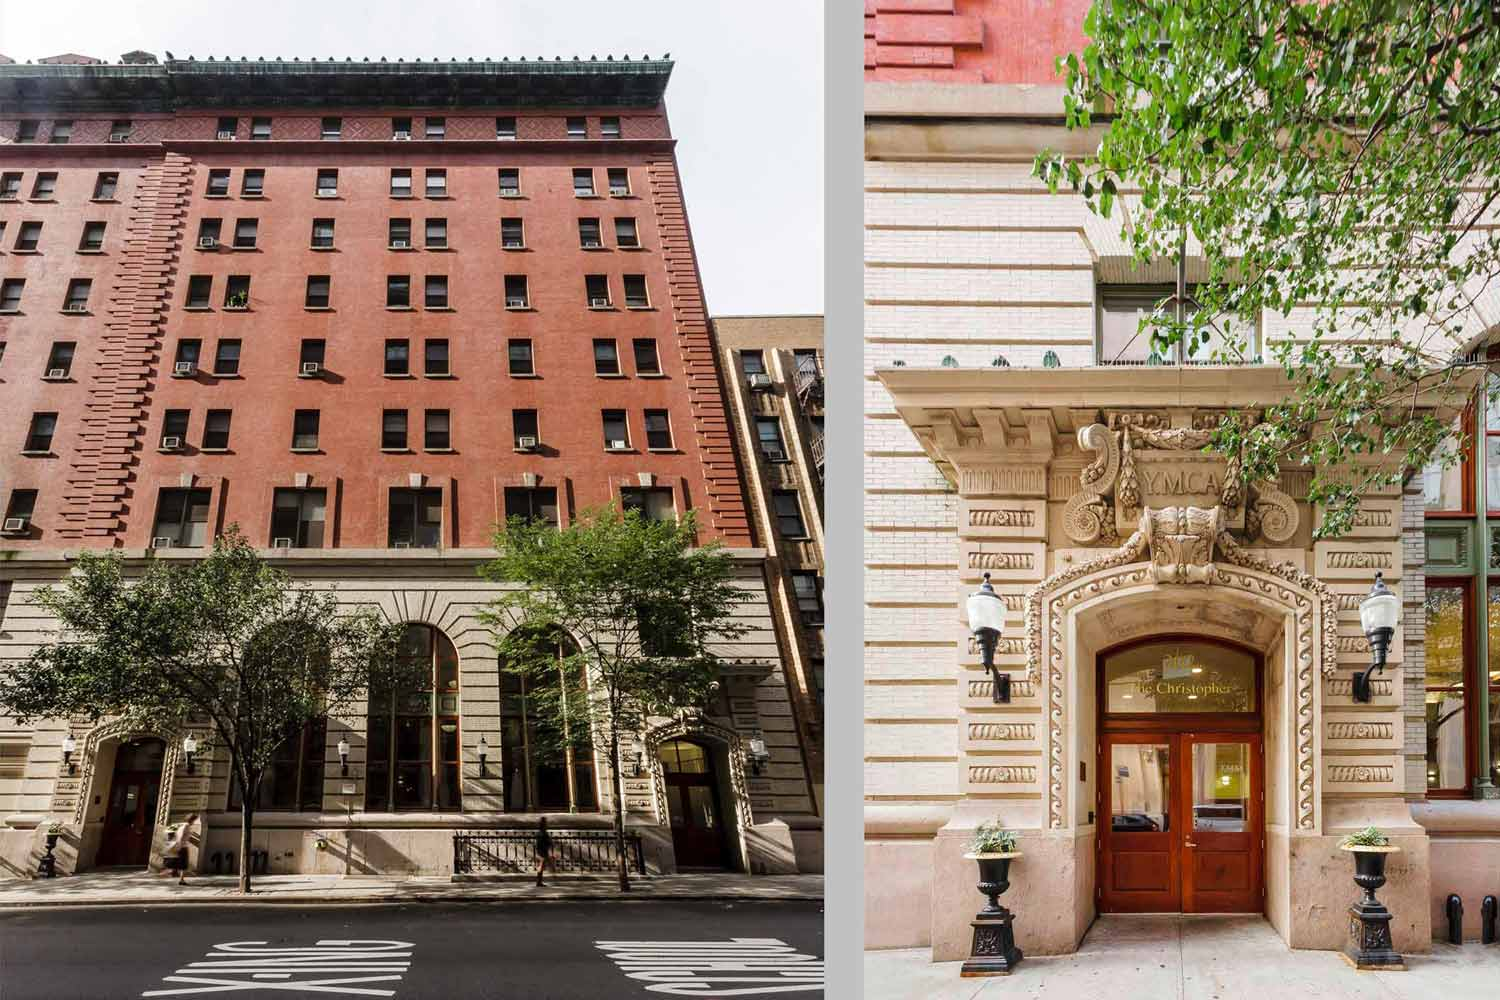 The former McBurney YMCA in NYC was transformed into housing for young adults and homeless individuals.